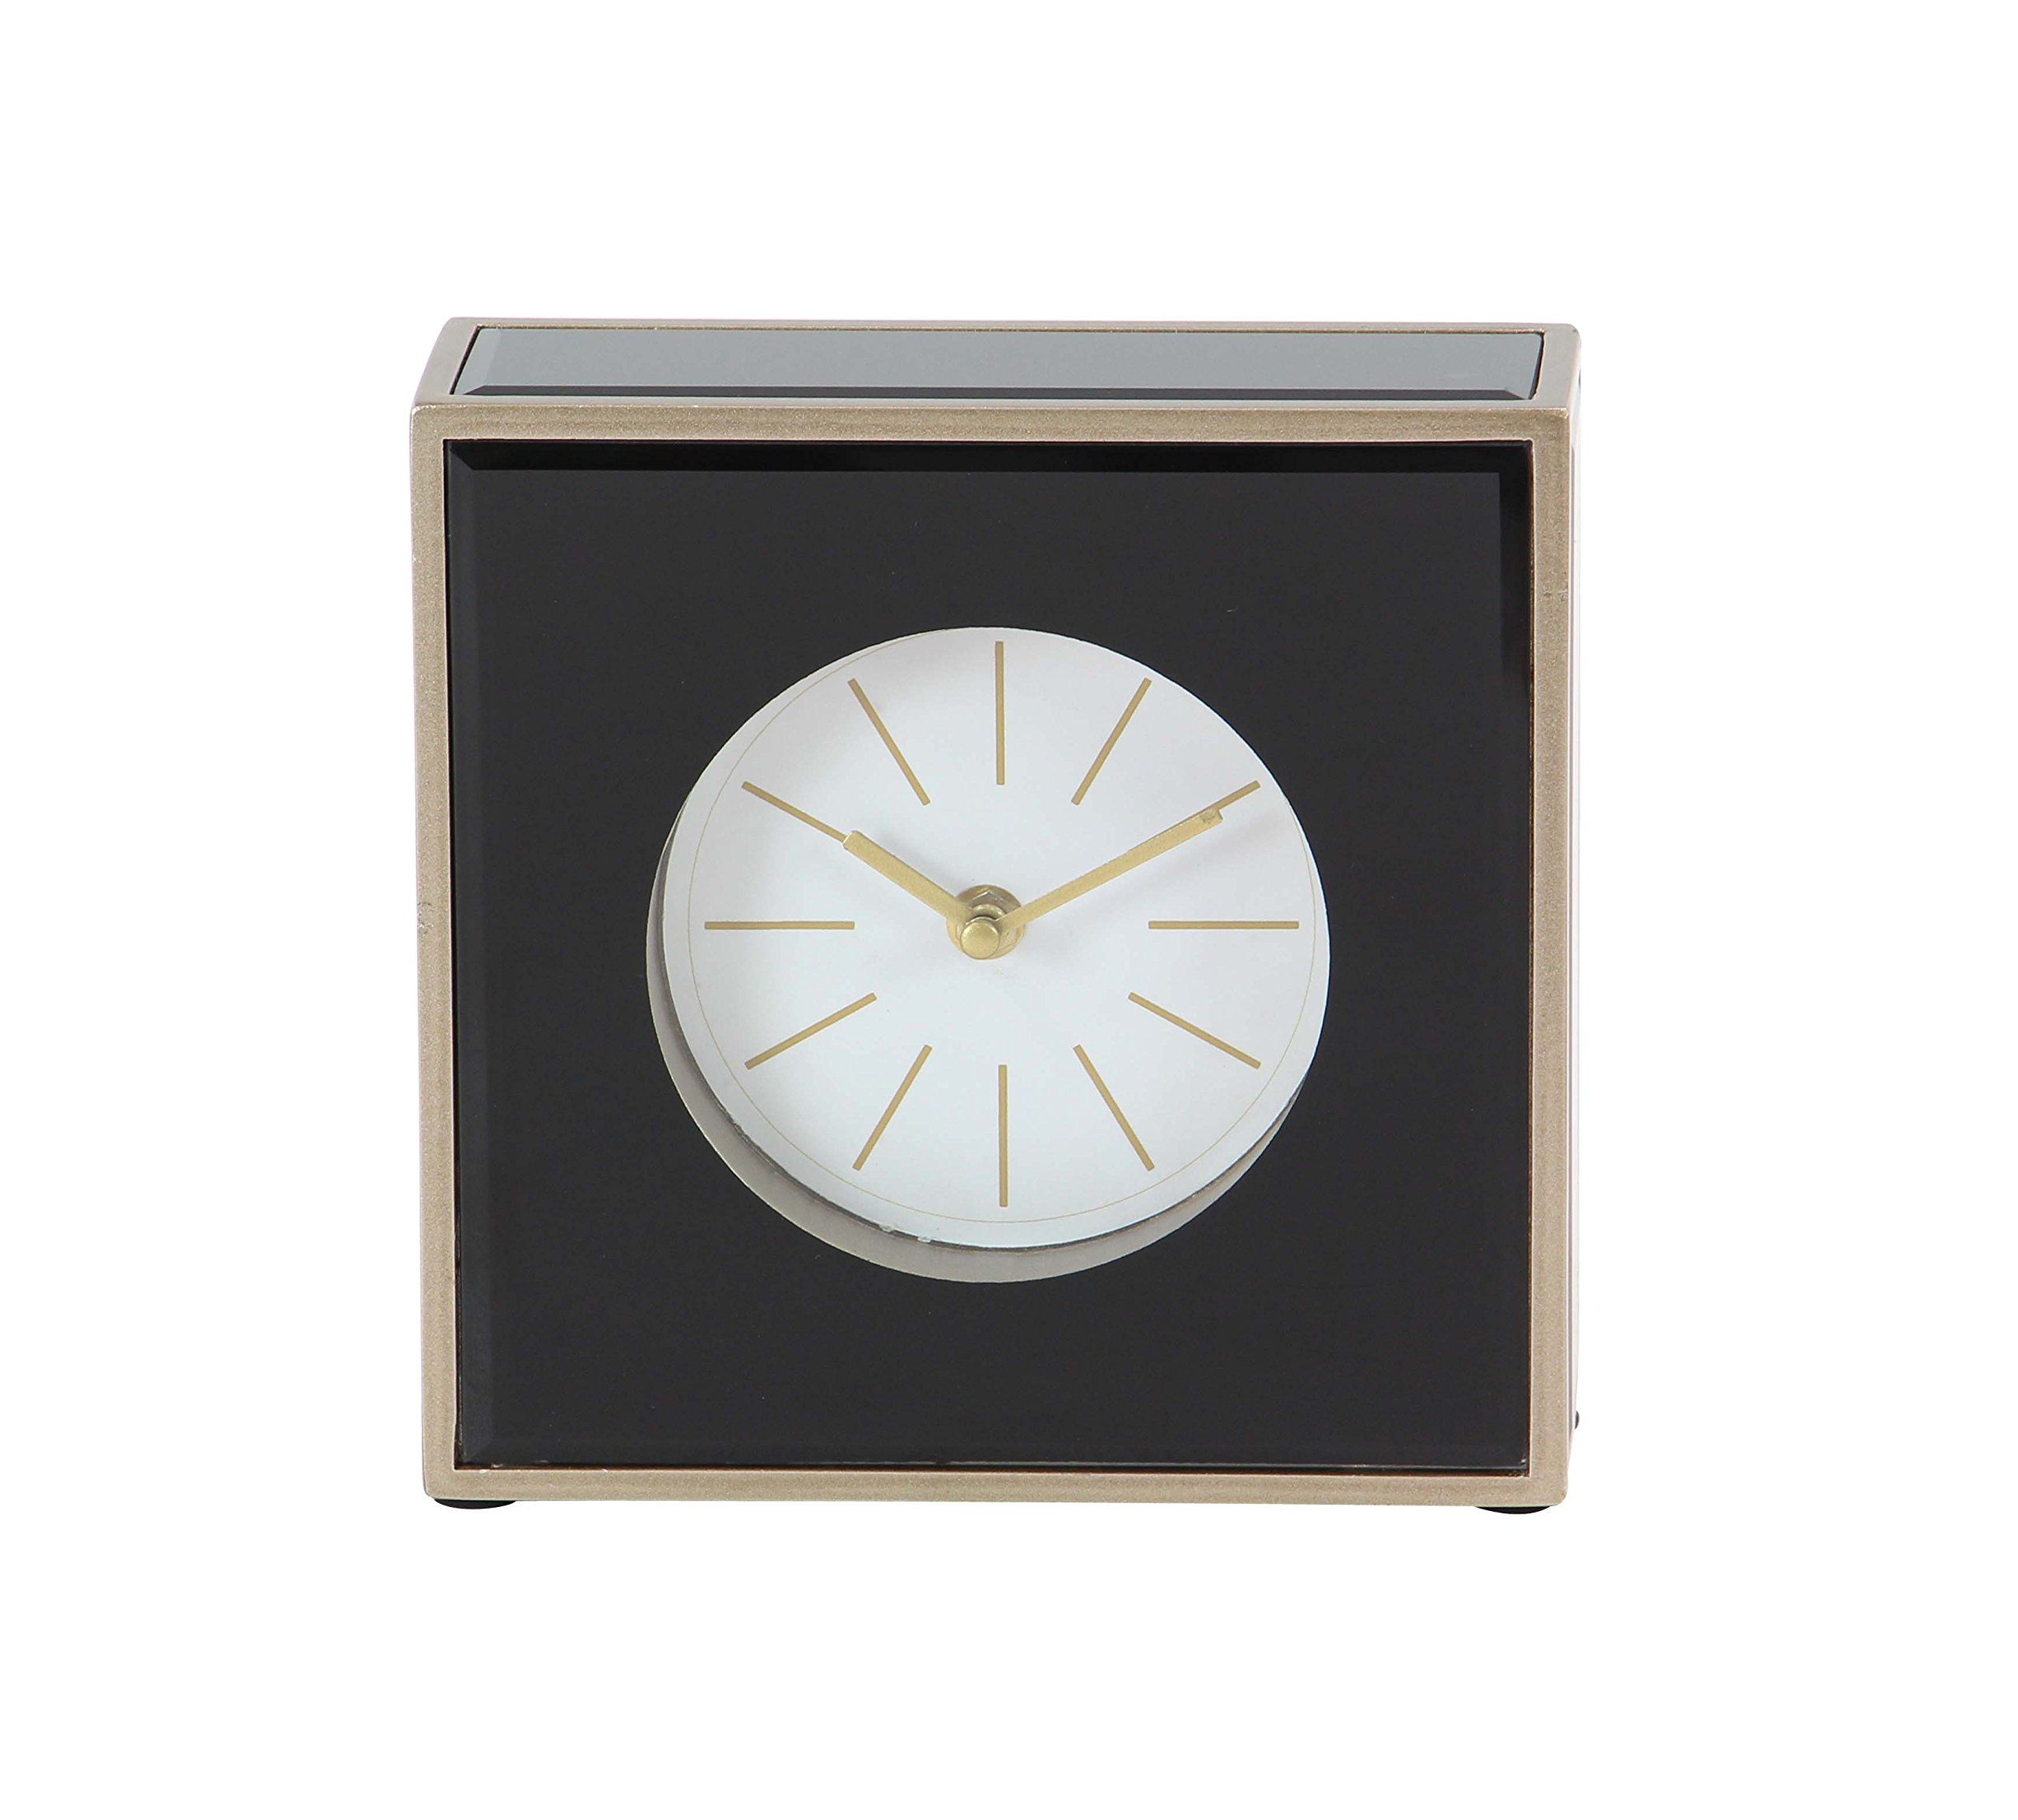 Deco 79 87388 Table Clock, Black/Brown/Gold/White - Suits perfectly in your room's side table Gold finish adds elegance to your space MDF wood provides durability to the frame - clocks, bedroom-decor, bedroom - 81sEdv2YZnL -